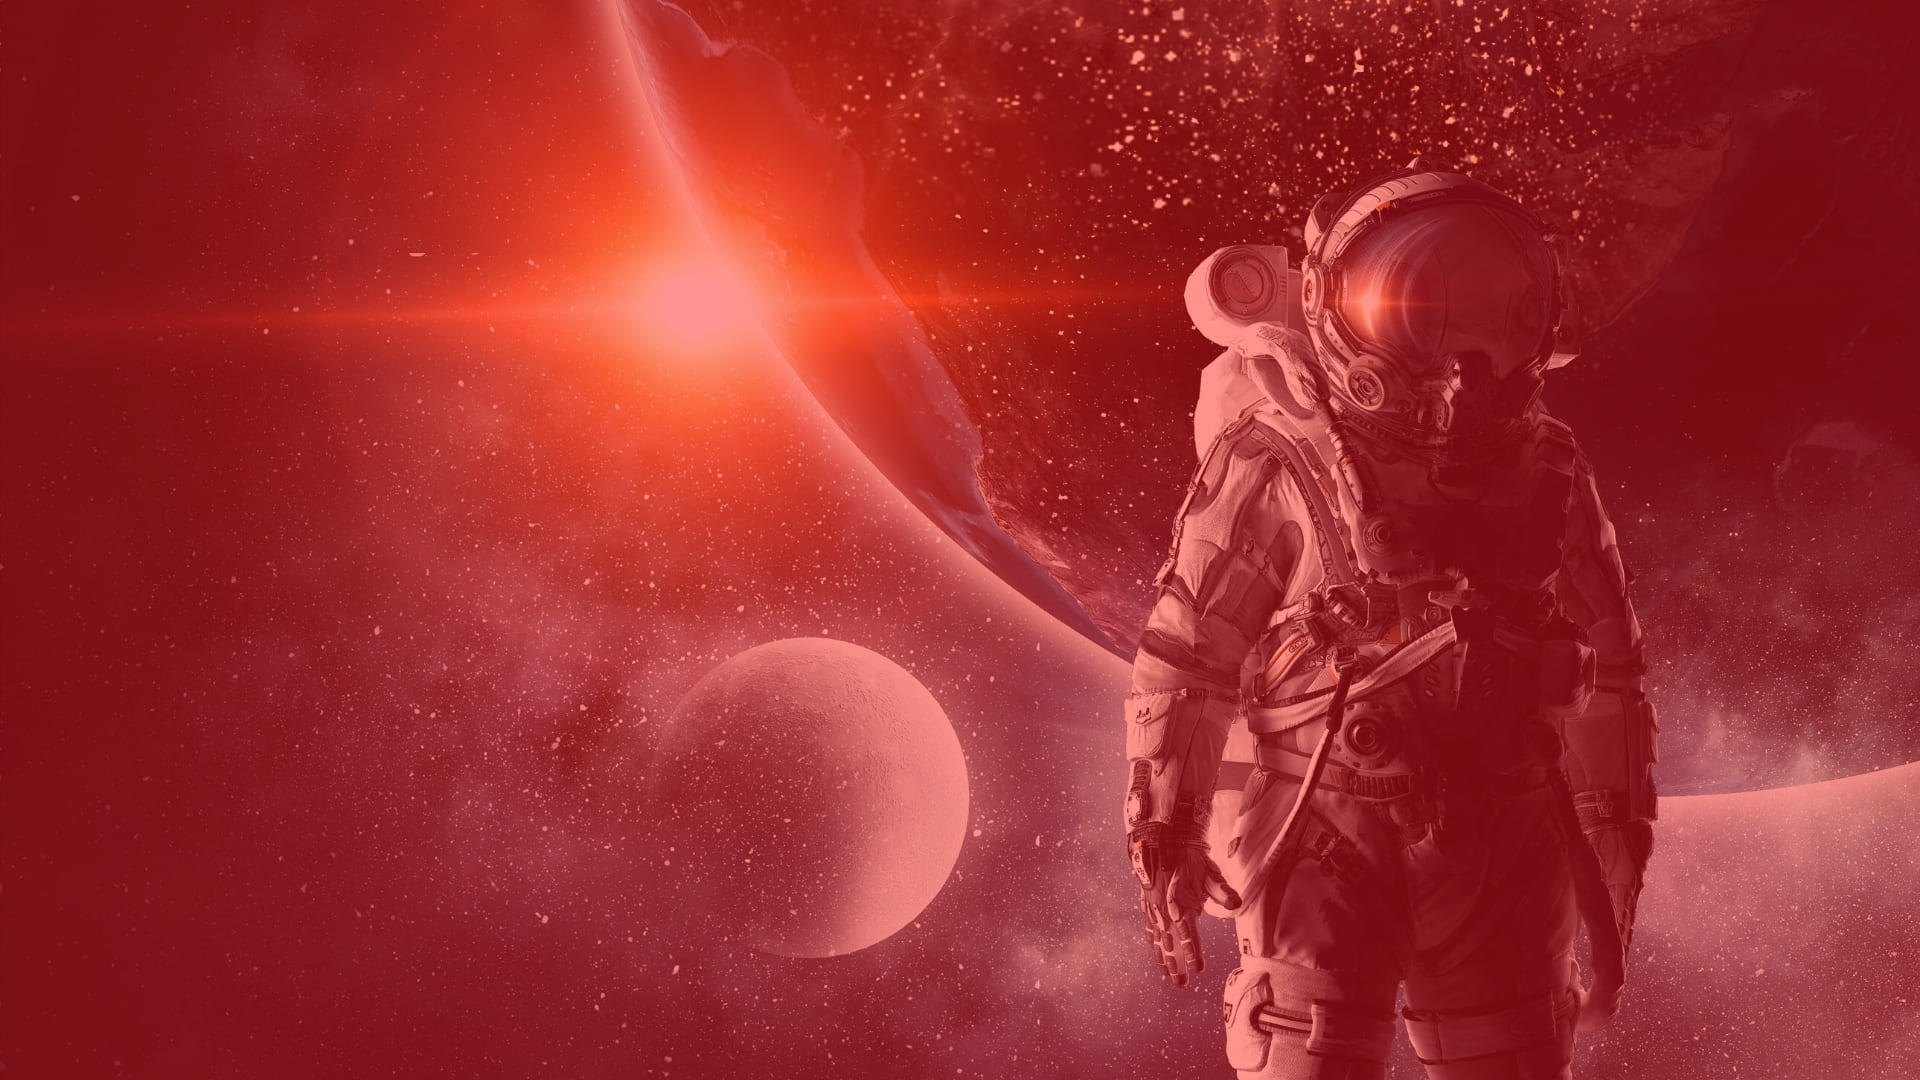 Red Space wallpapers